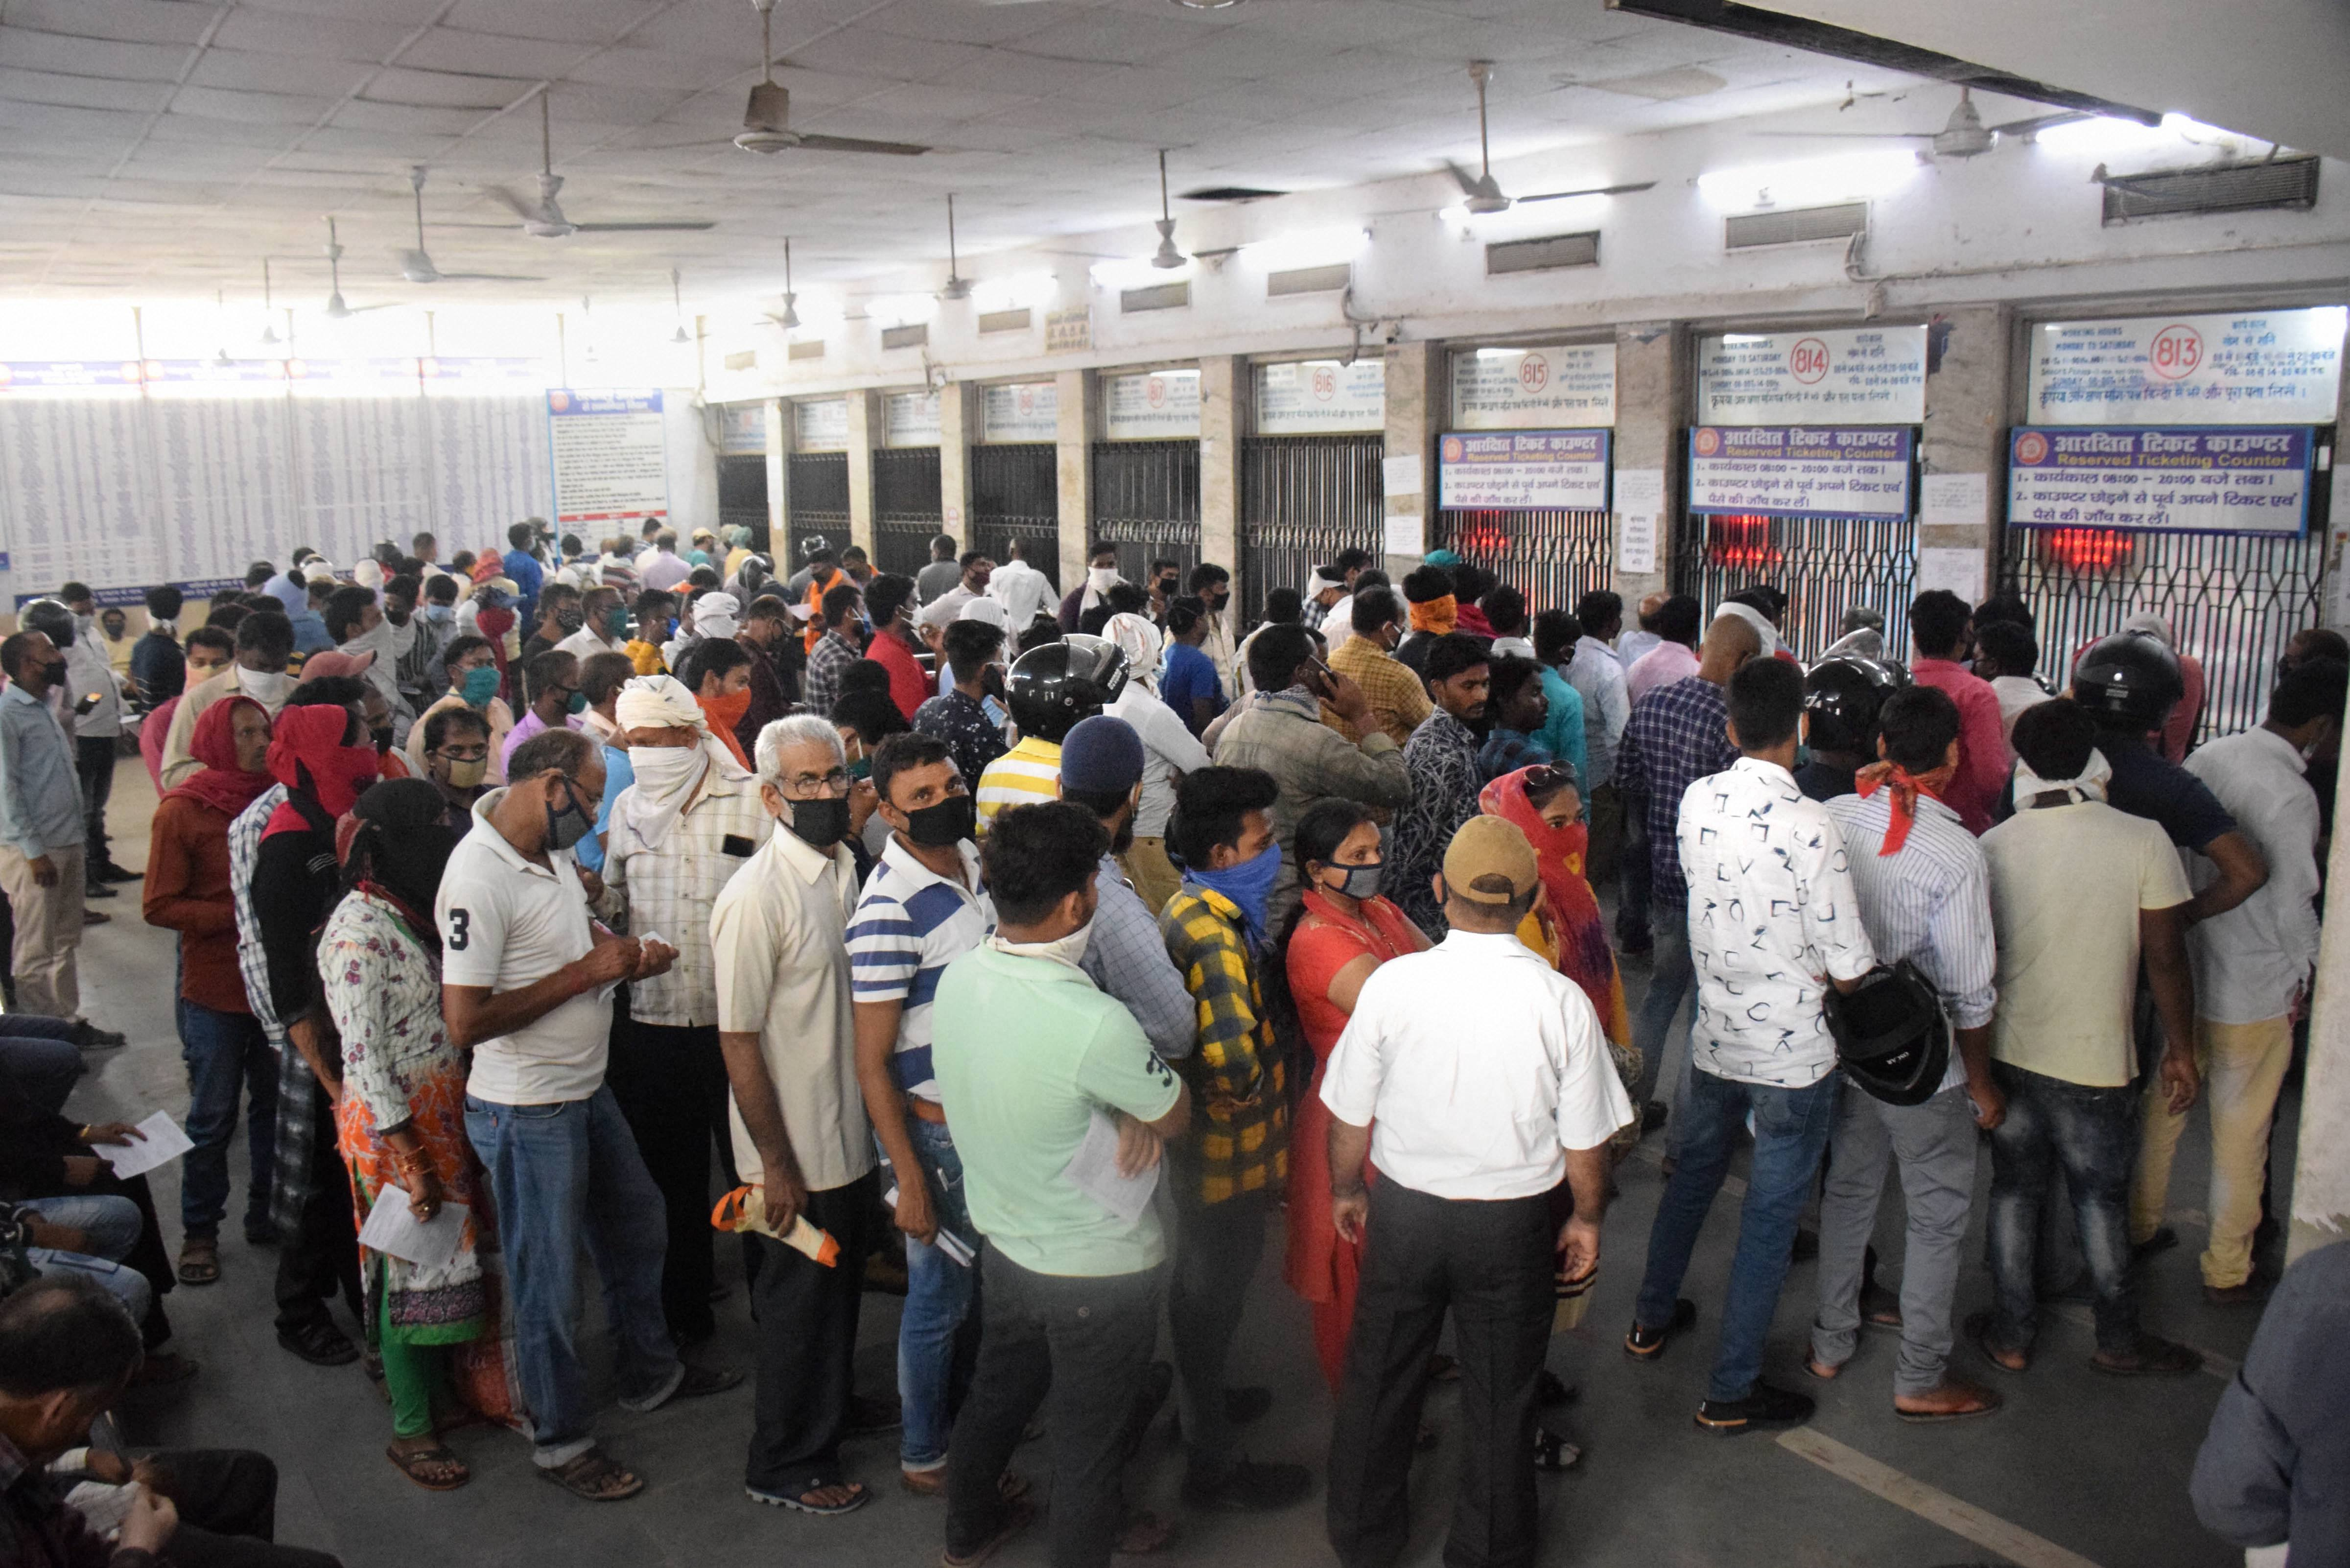 People flout social distancing norms as they stand in a queue infront of railway ticket counters, during the ongoing COVID-19 nationwide lockdown, in Gorakhpur, Tuesday, June 2, 2020.